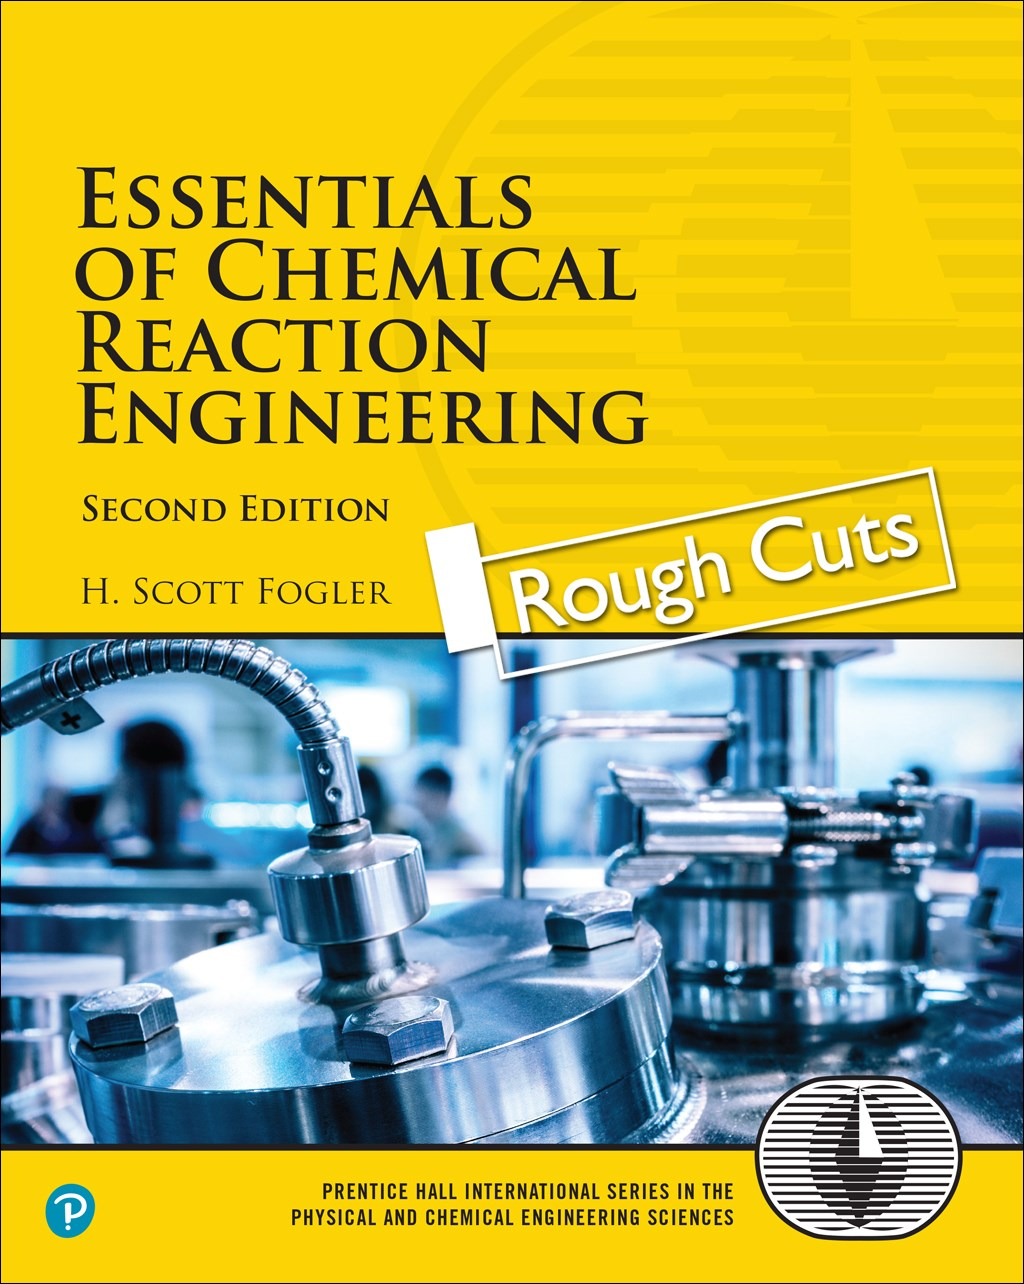 Essentials of Chemical Reaction Engineering, Rough Cuts, 2nd Edition